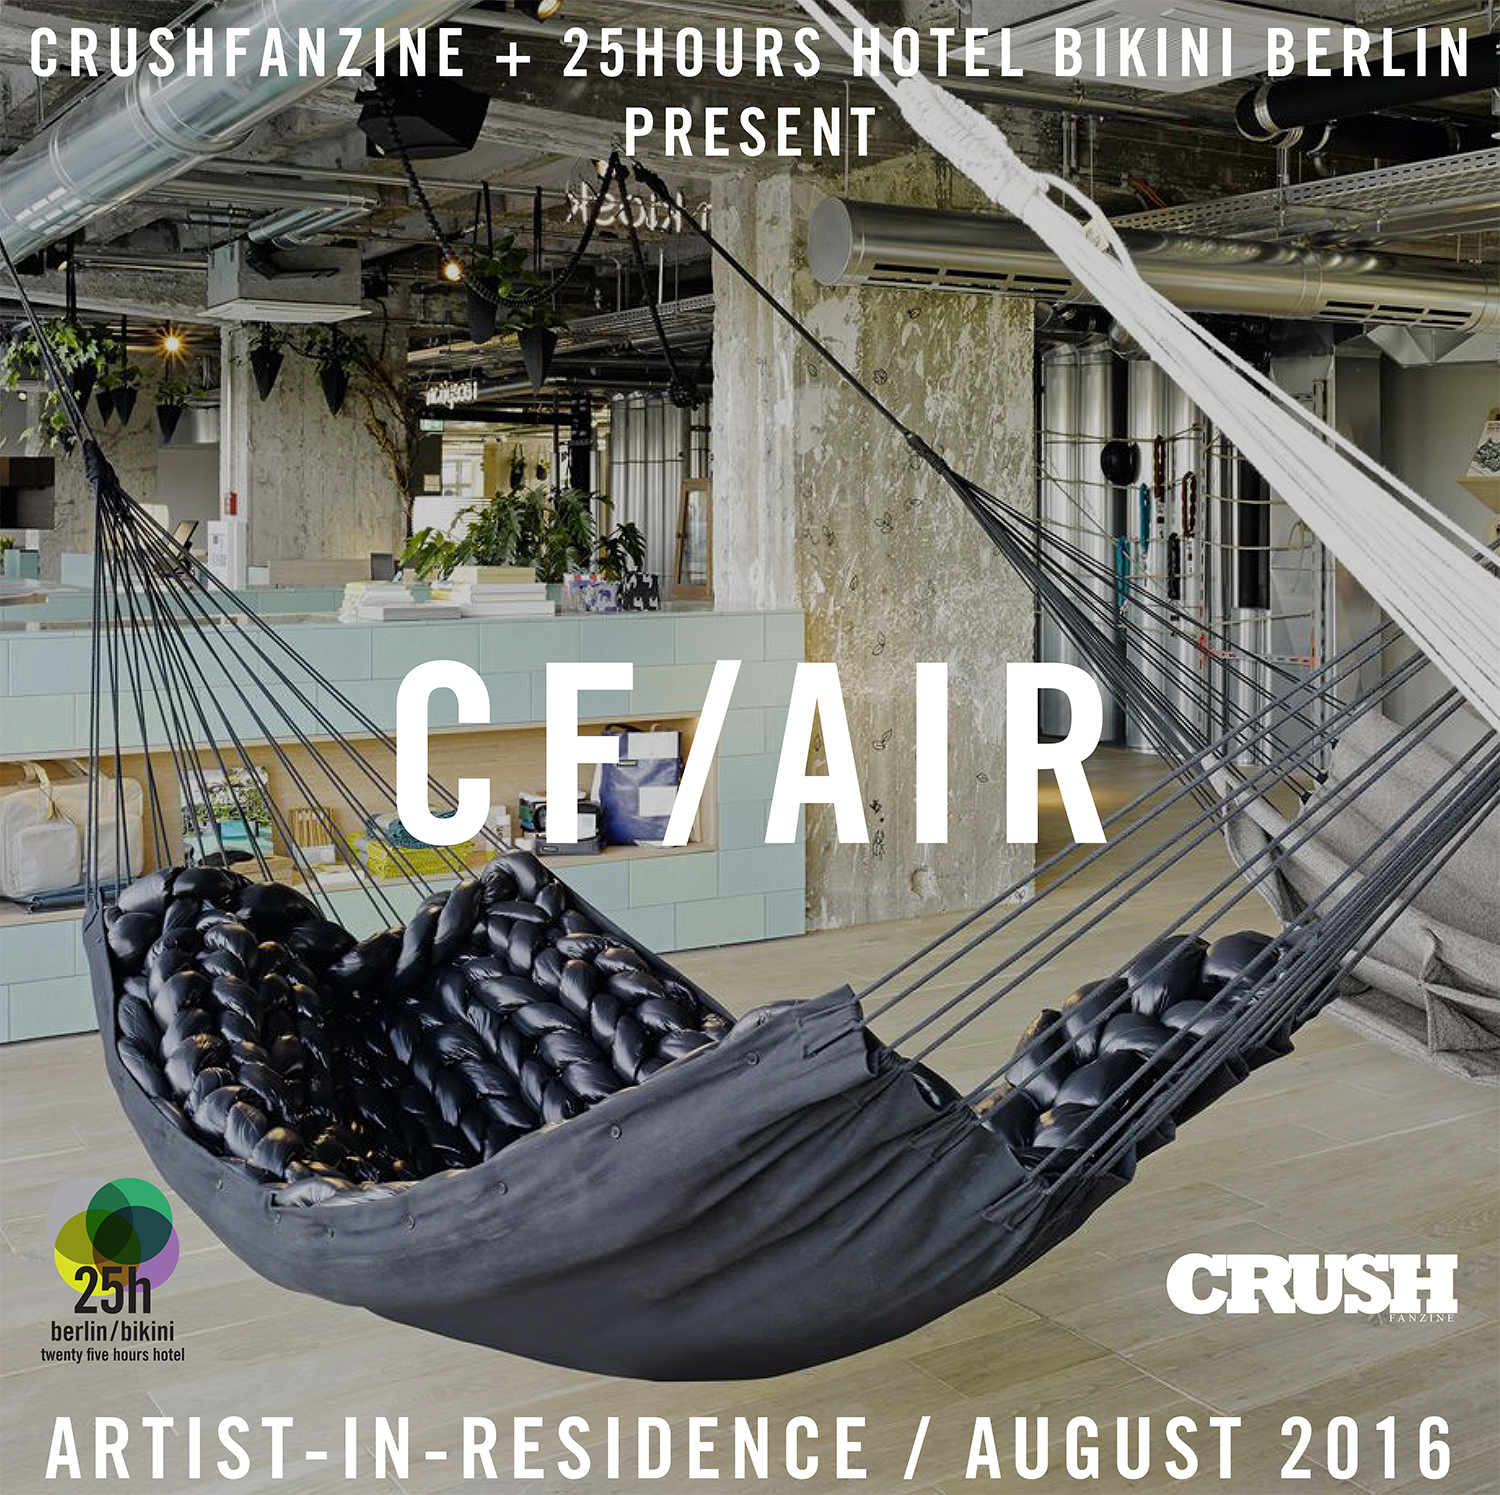 pay attention crushfanzine 25hours hotel bikini berlin artist in residence program cfair. Black Bedroom Furniture Sets. Home Design Ideas